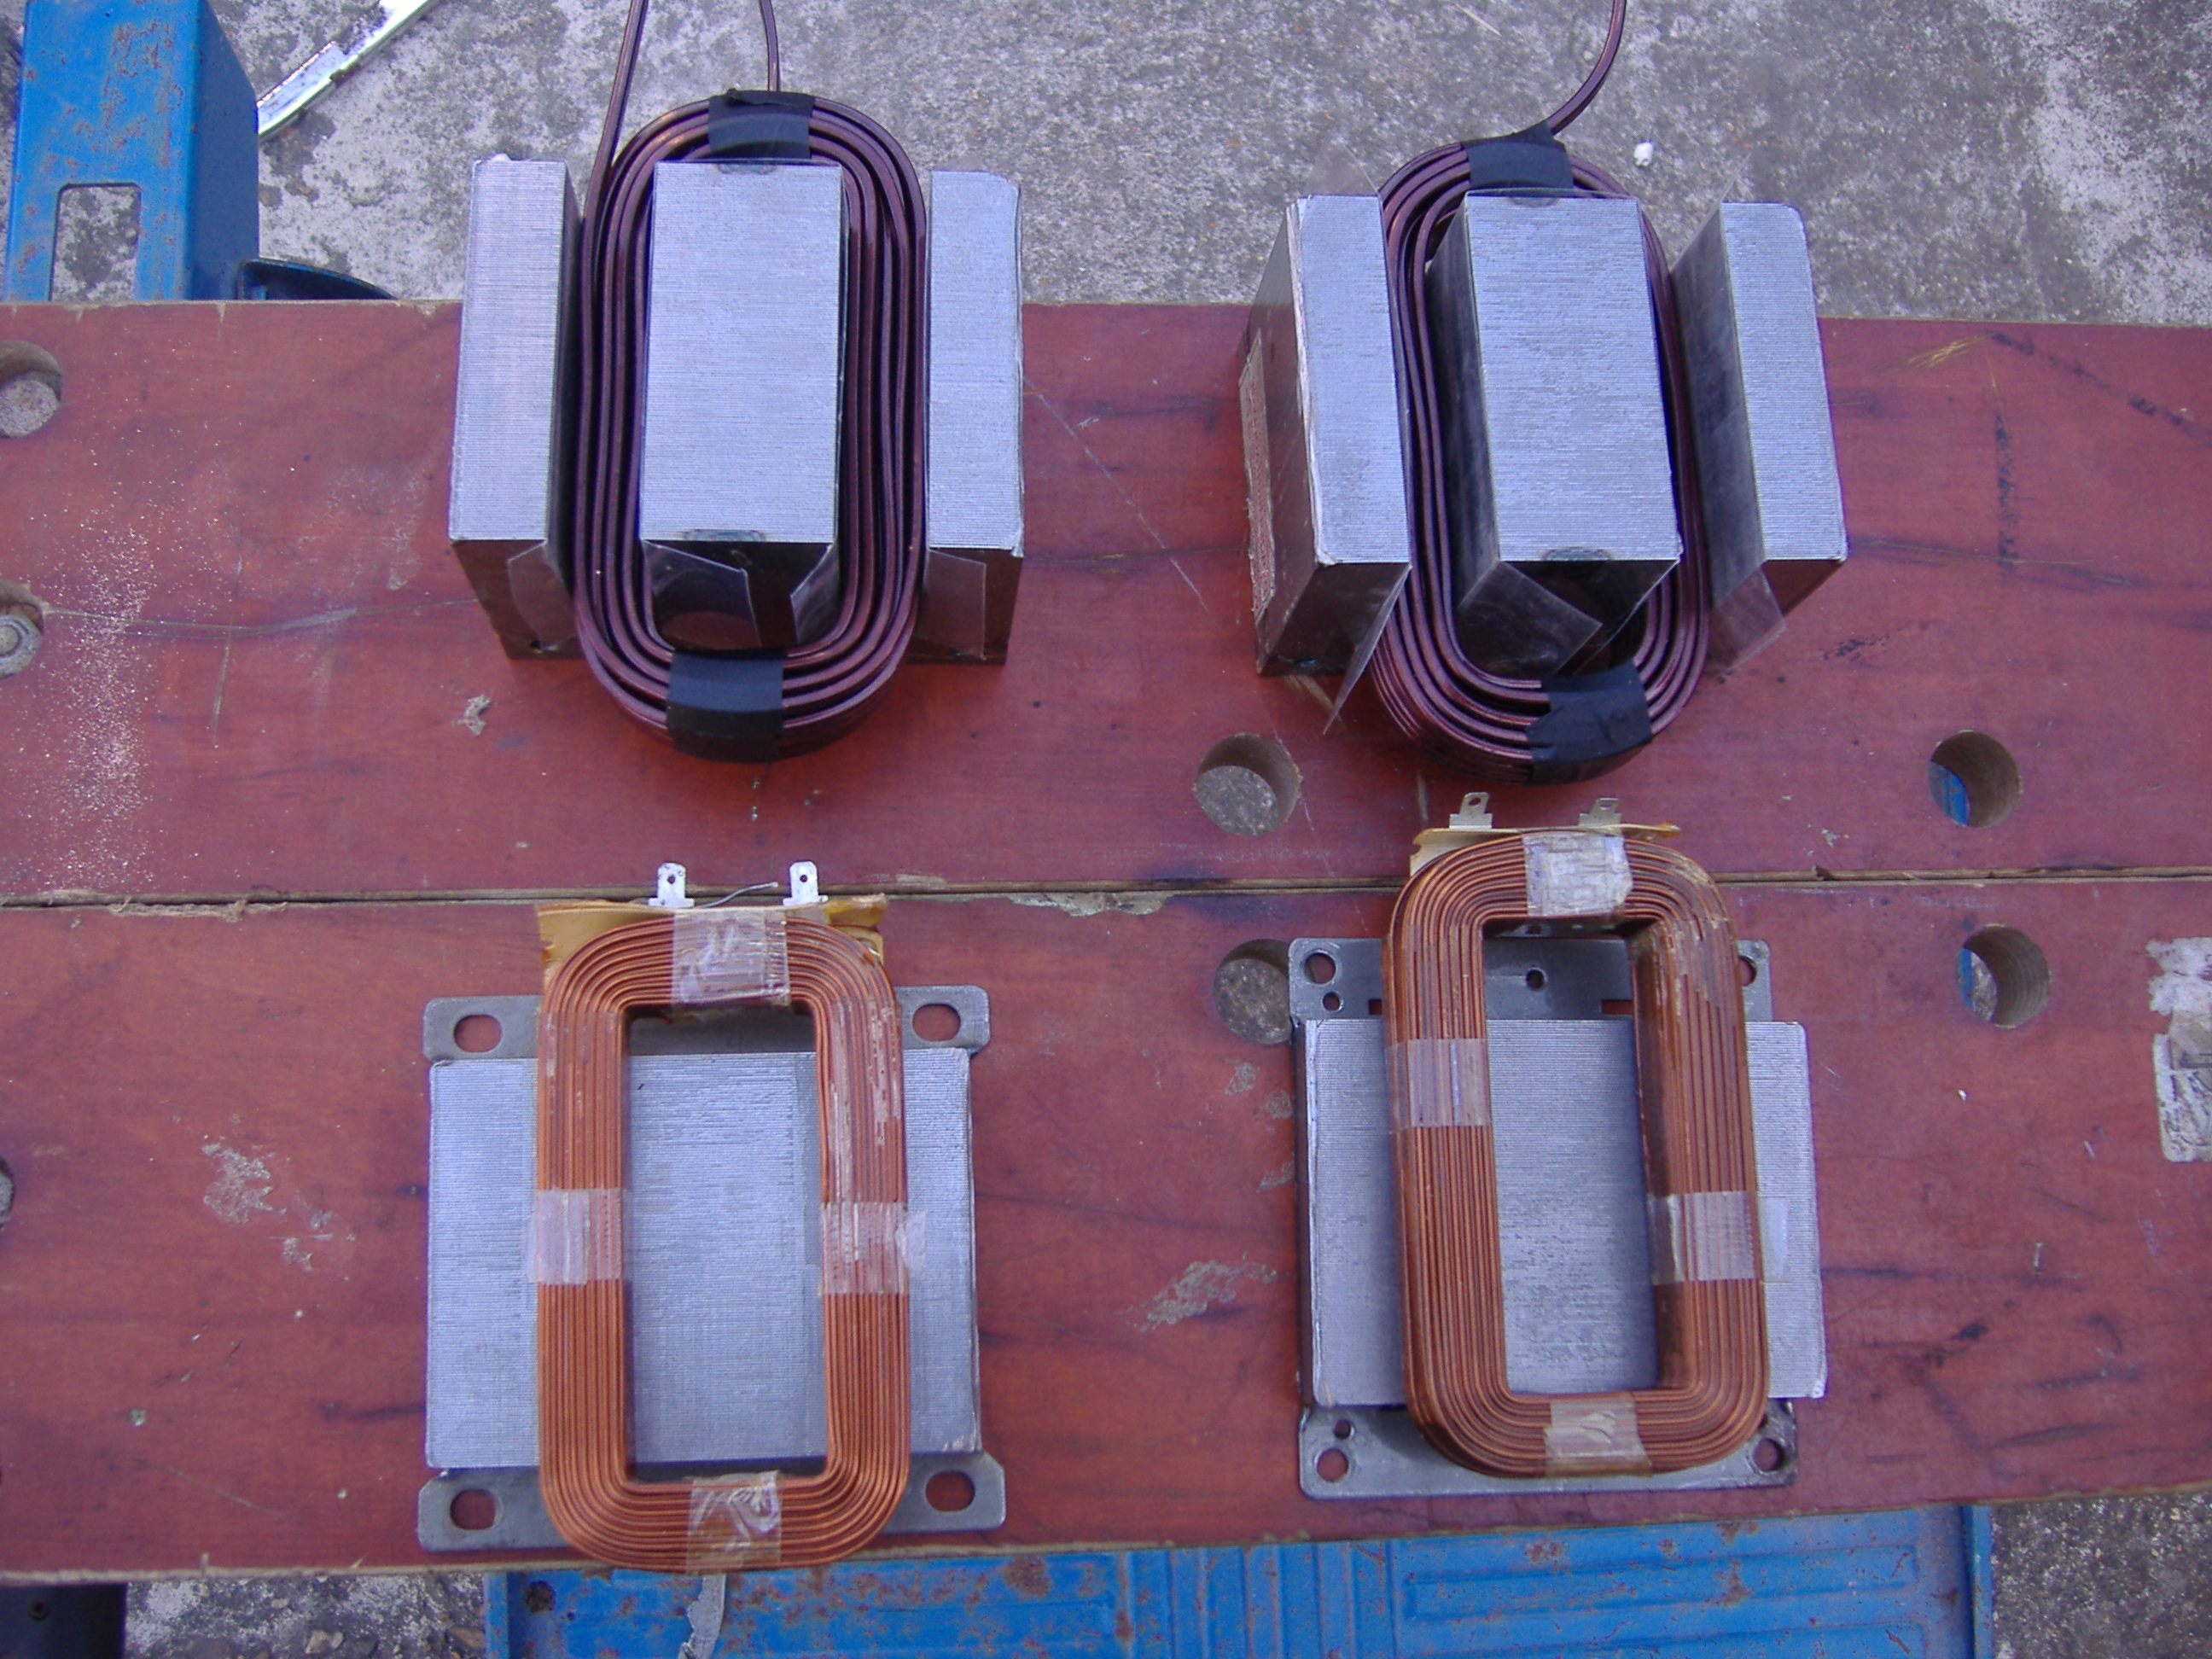 Building An Arc Welder From Microwave Oven Transformers Products Wiring Two In Series Just About To Be Assembled Cores Insulated With Ohp Transparency